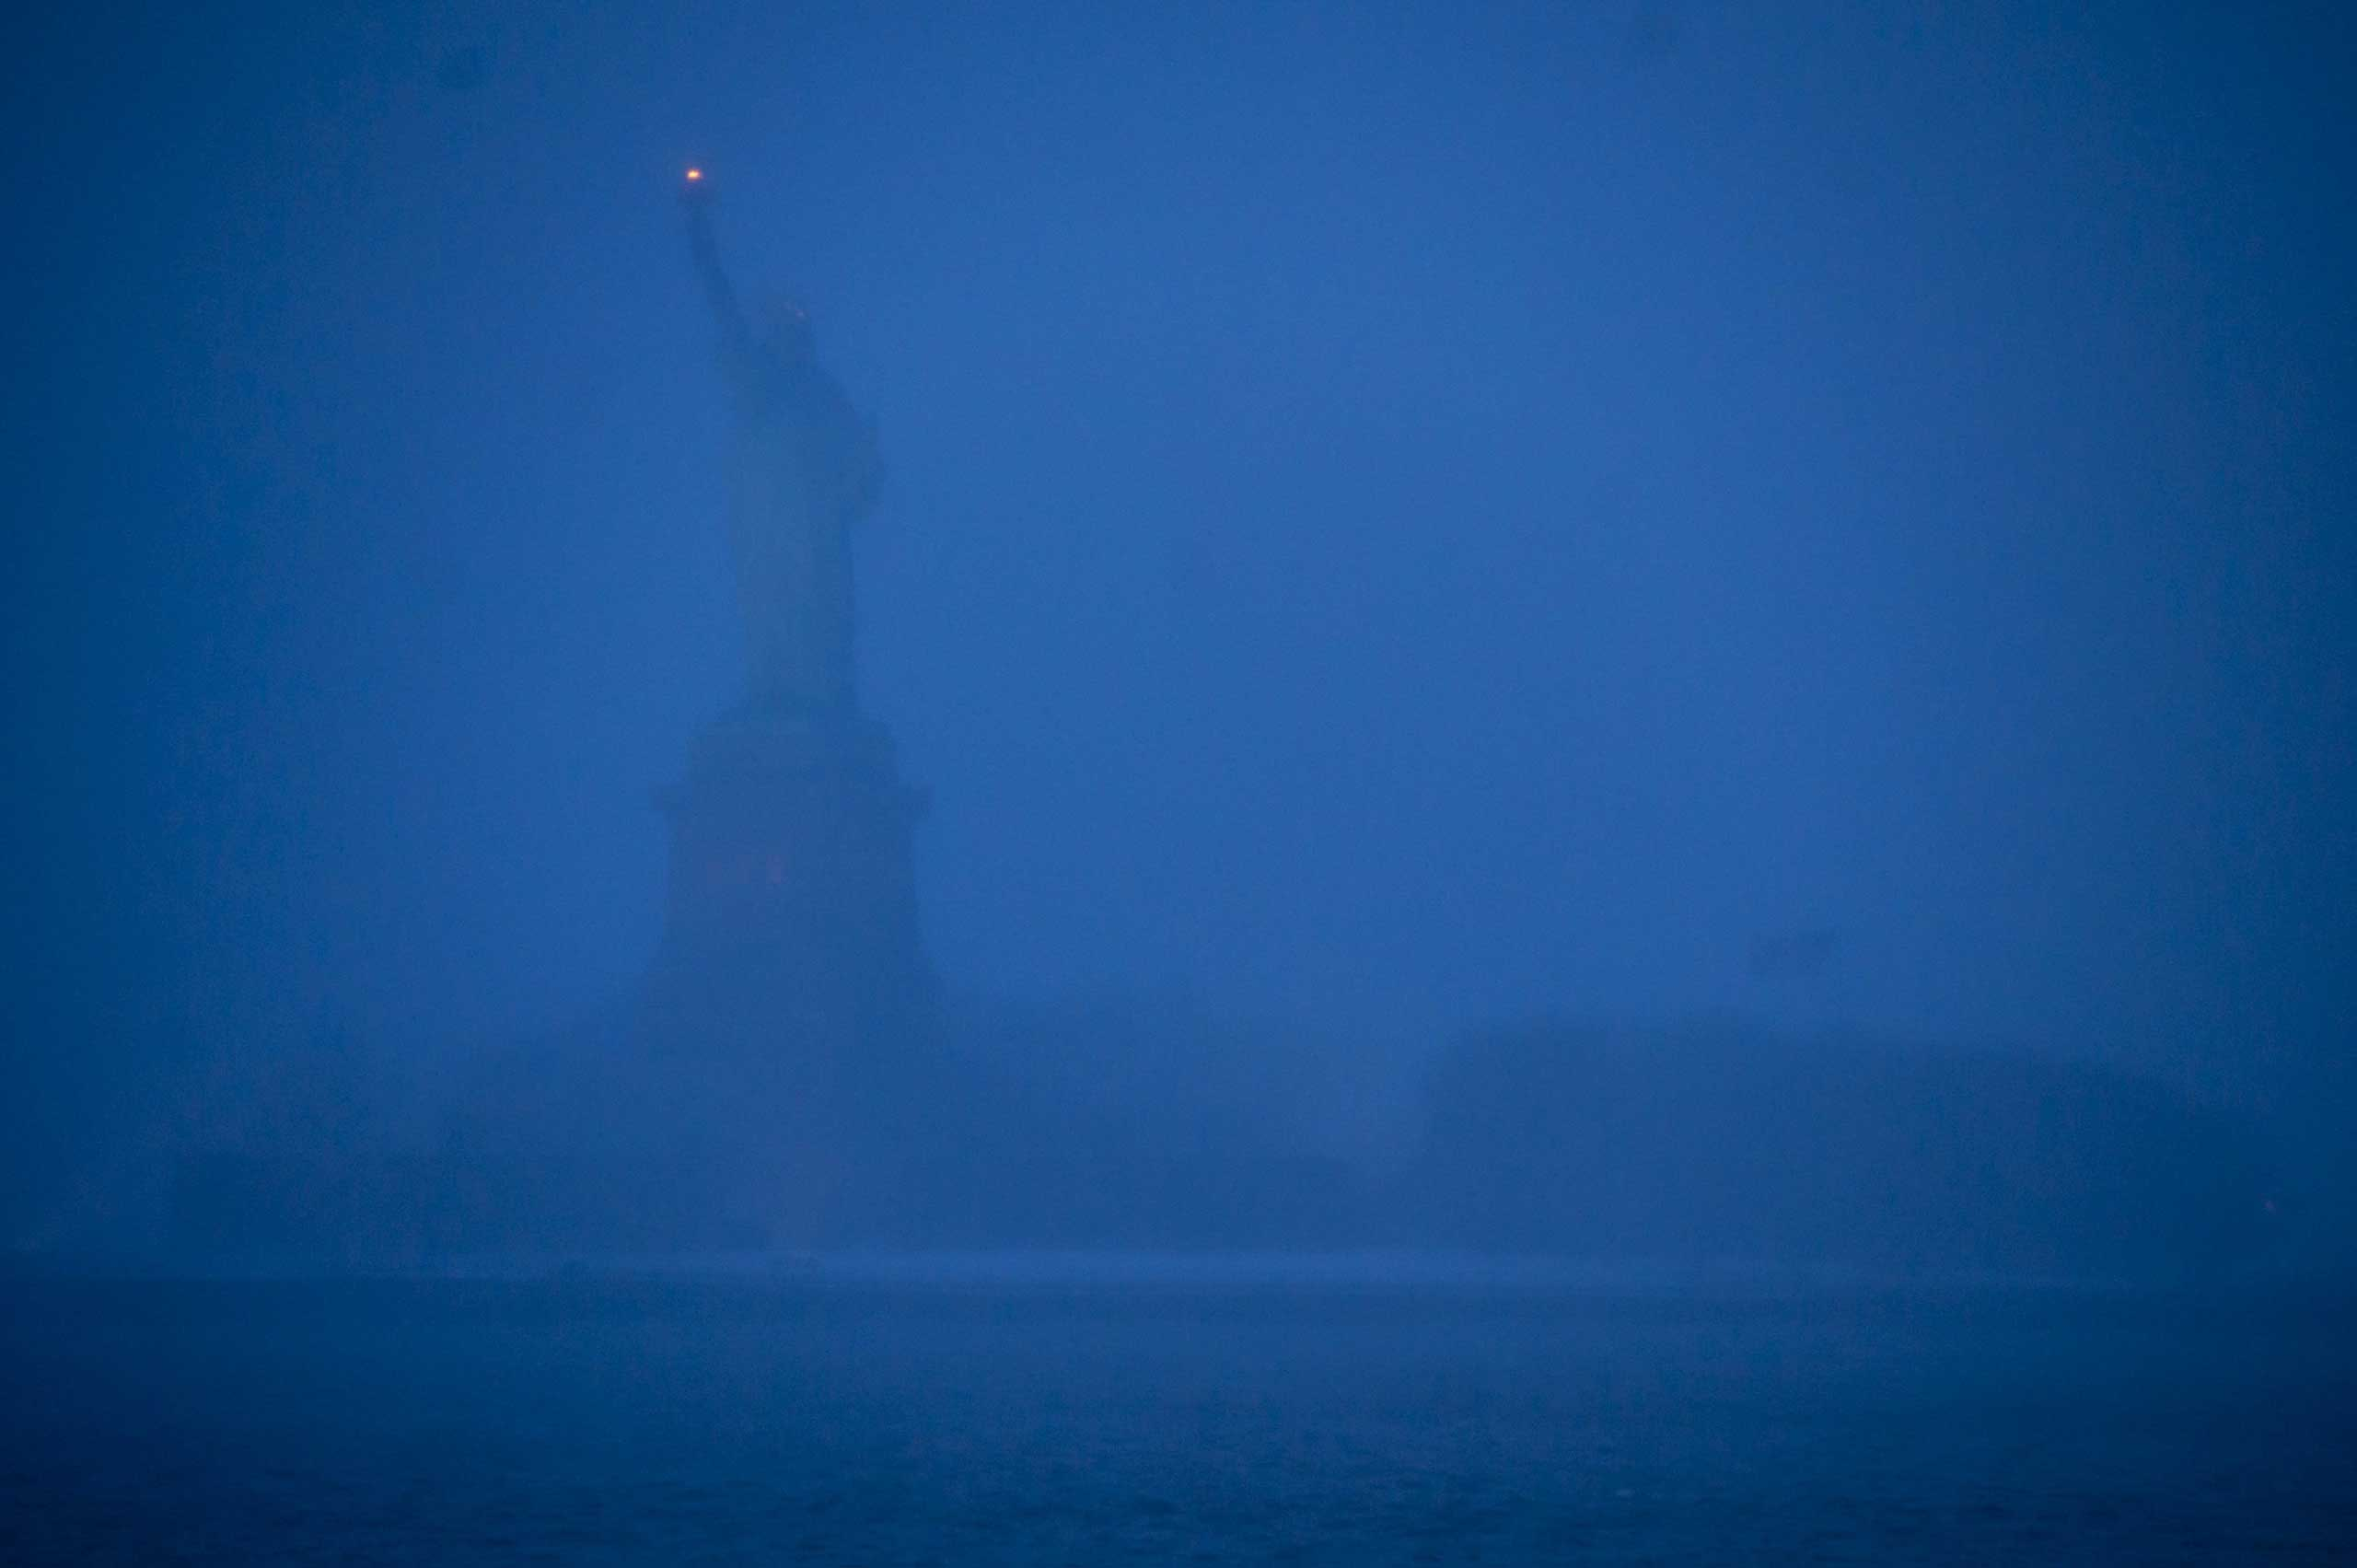 Jan. 26, 2015. The Statue of Liberty is seen faintly through heavy snow in New York. Millions of people from New Jersey to Maine left work early, rushed off roads and took shelter as a snowstorm bore down on the region.